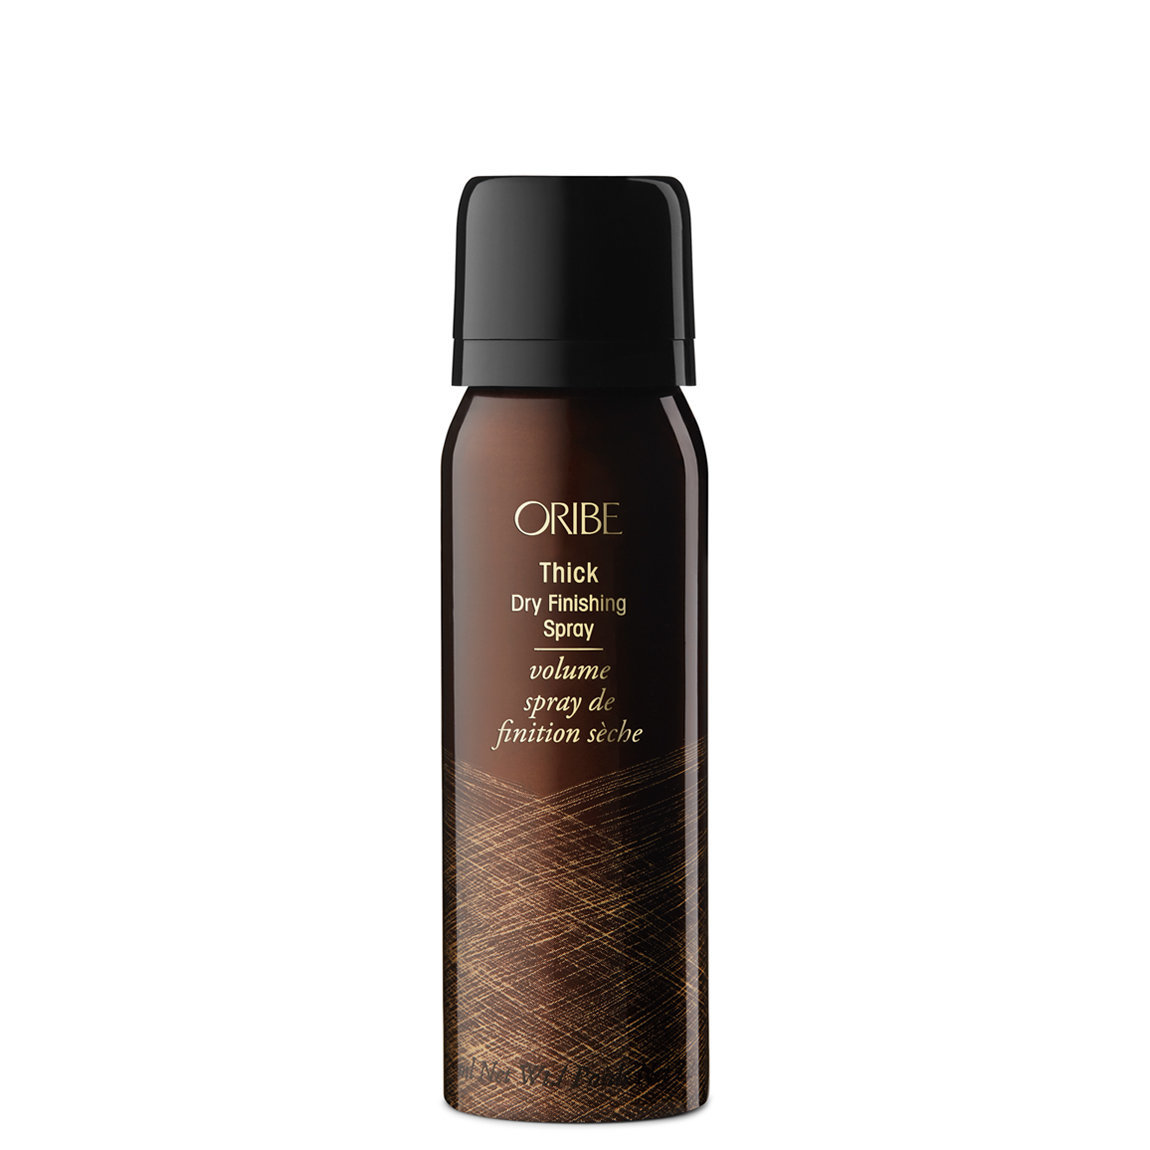 Oribe Thick Dry Finishing Spray 2 oz alternative view 1 - product swatch.